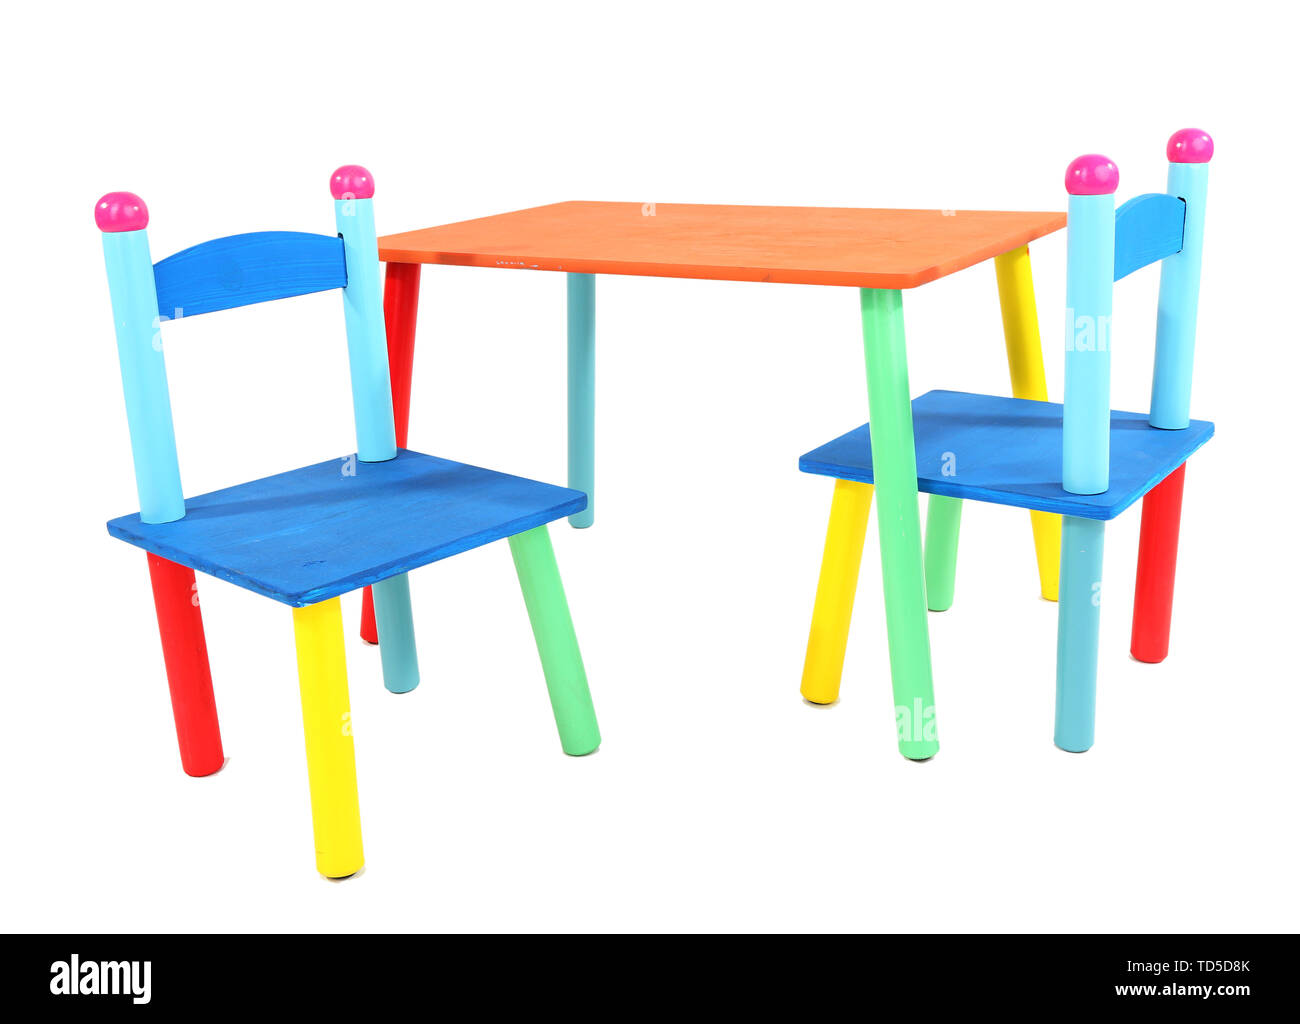 Phenomenal Small And Colorful Table And Chairs For Little Kids Isolated Gmtry Best Dining Table And Chair Ideas Images Gmtryco